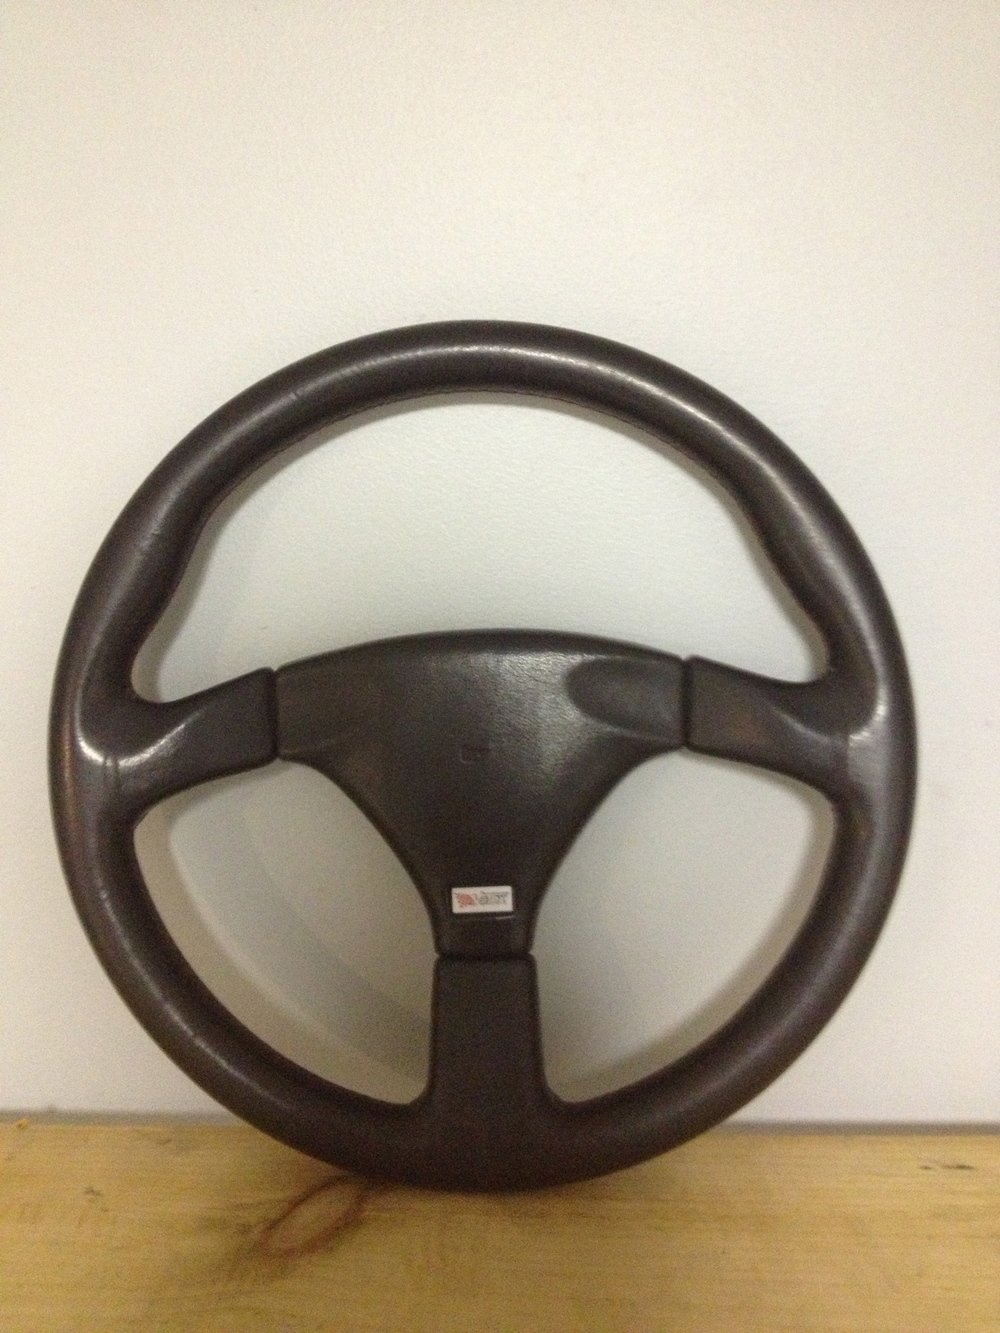 Votex 3 spoke steering wheel